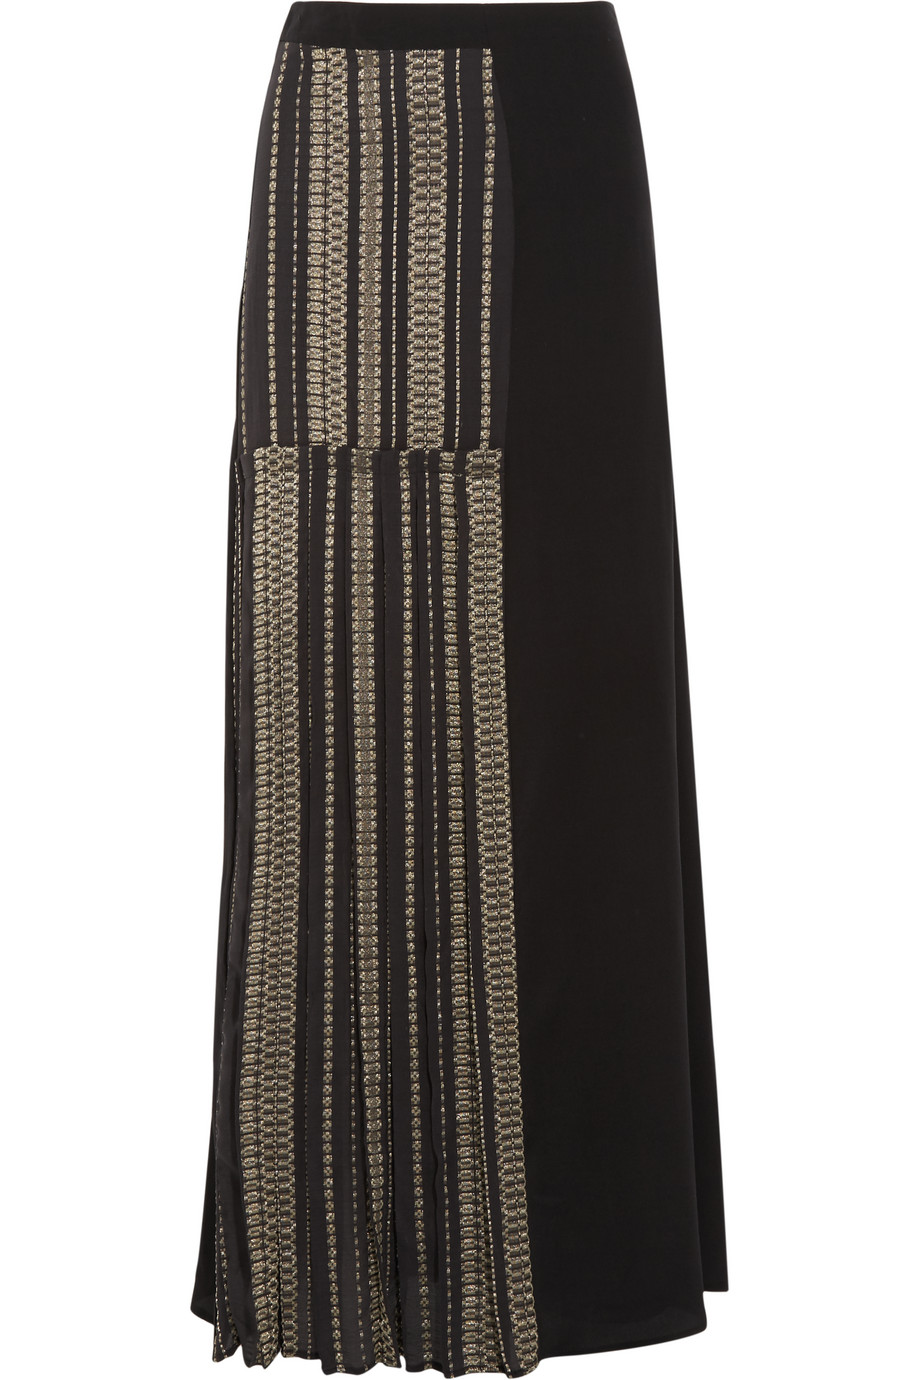 Zeus+dione Pleated Metallic-Trimmed Silk Maxi Skirt, Size: 36